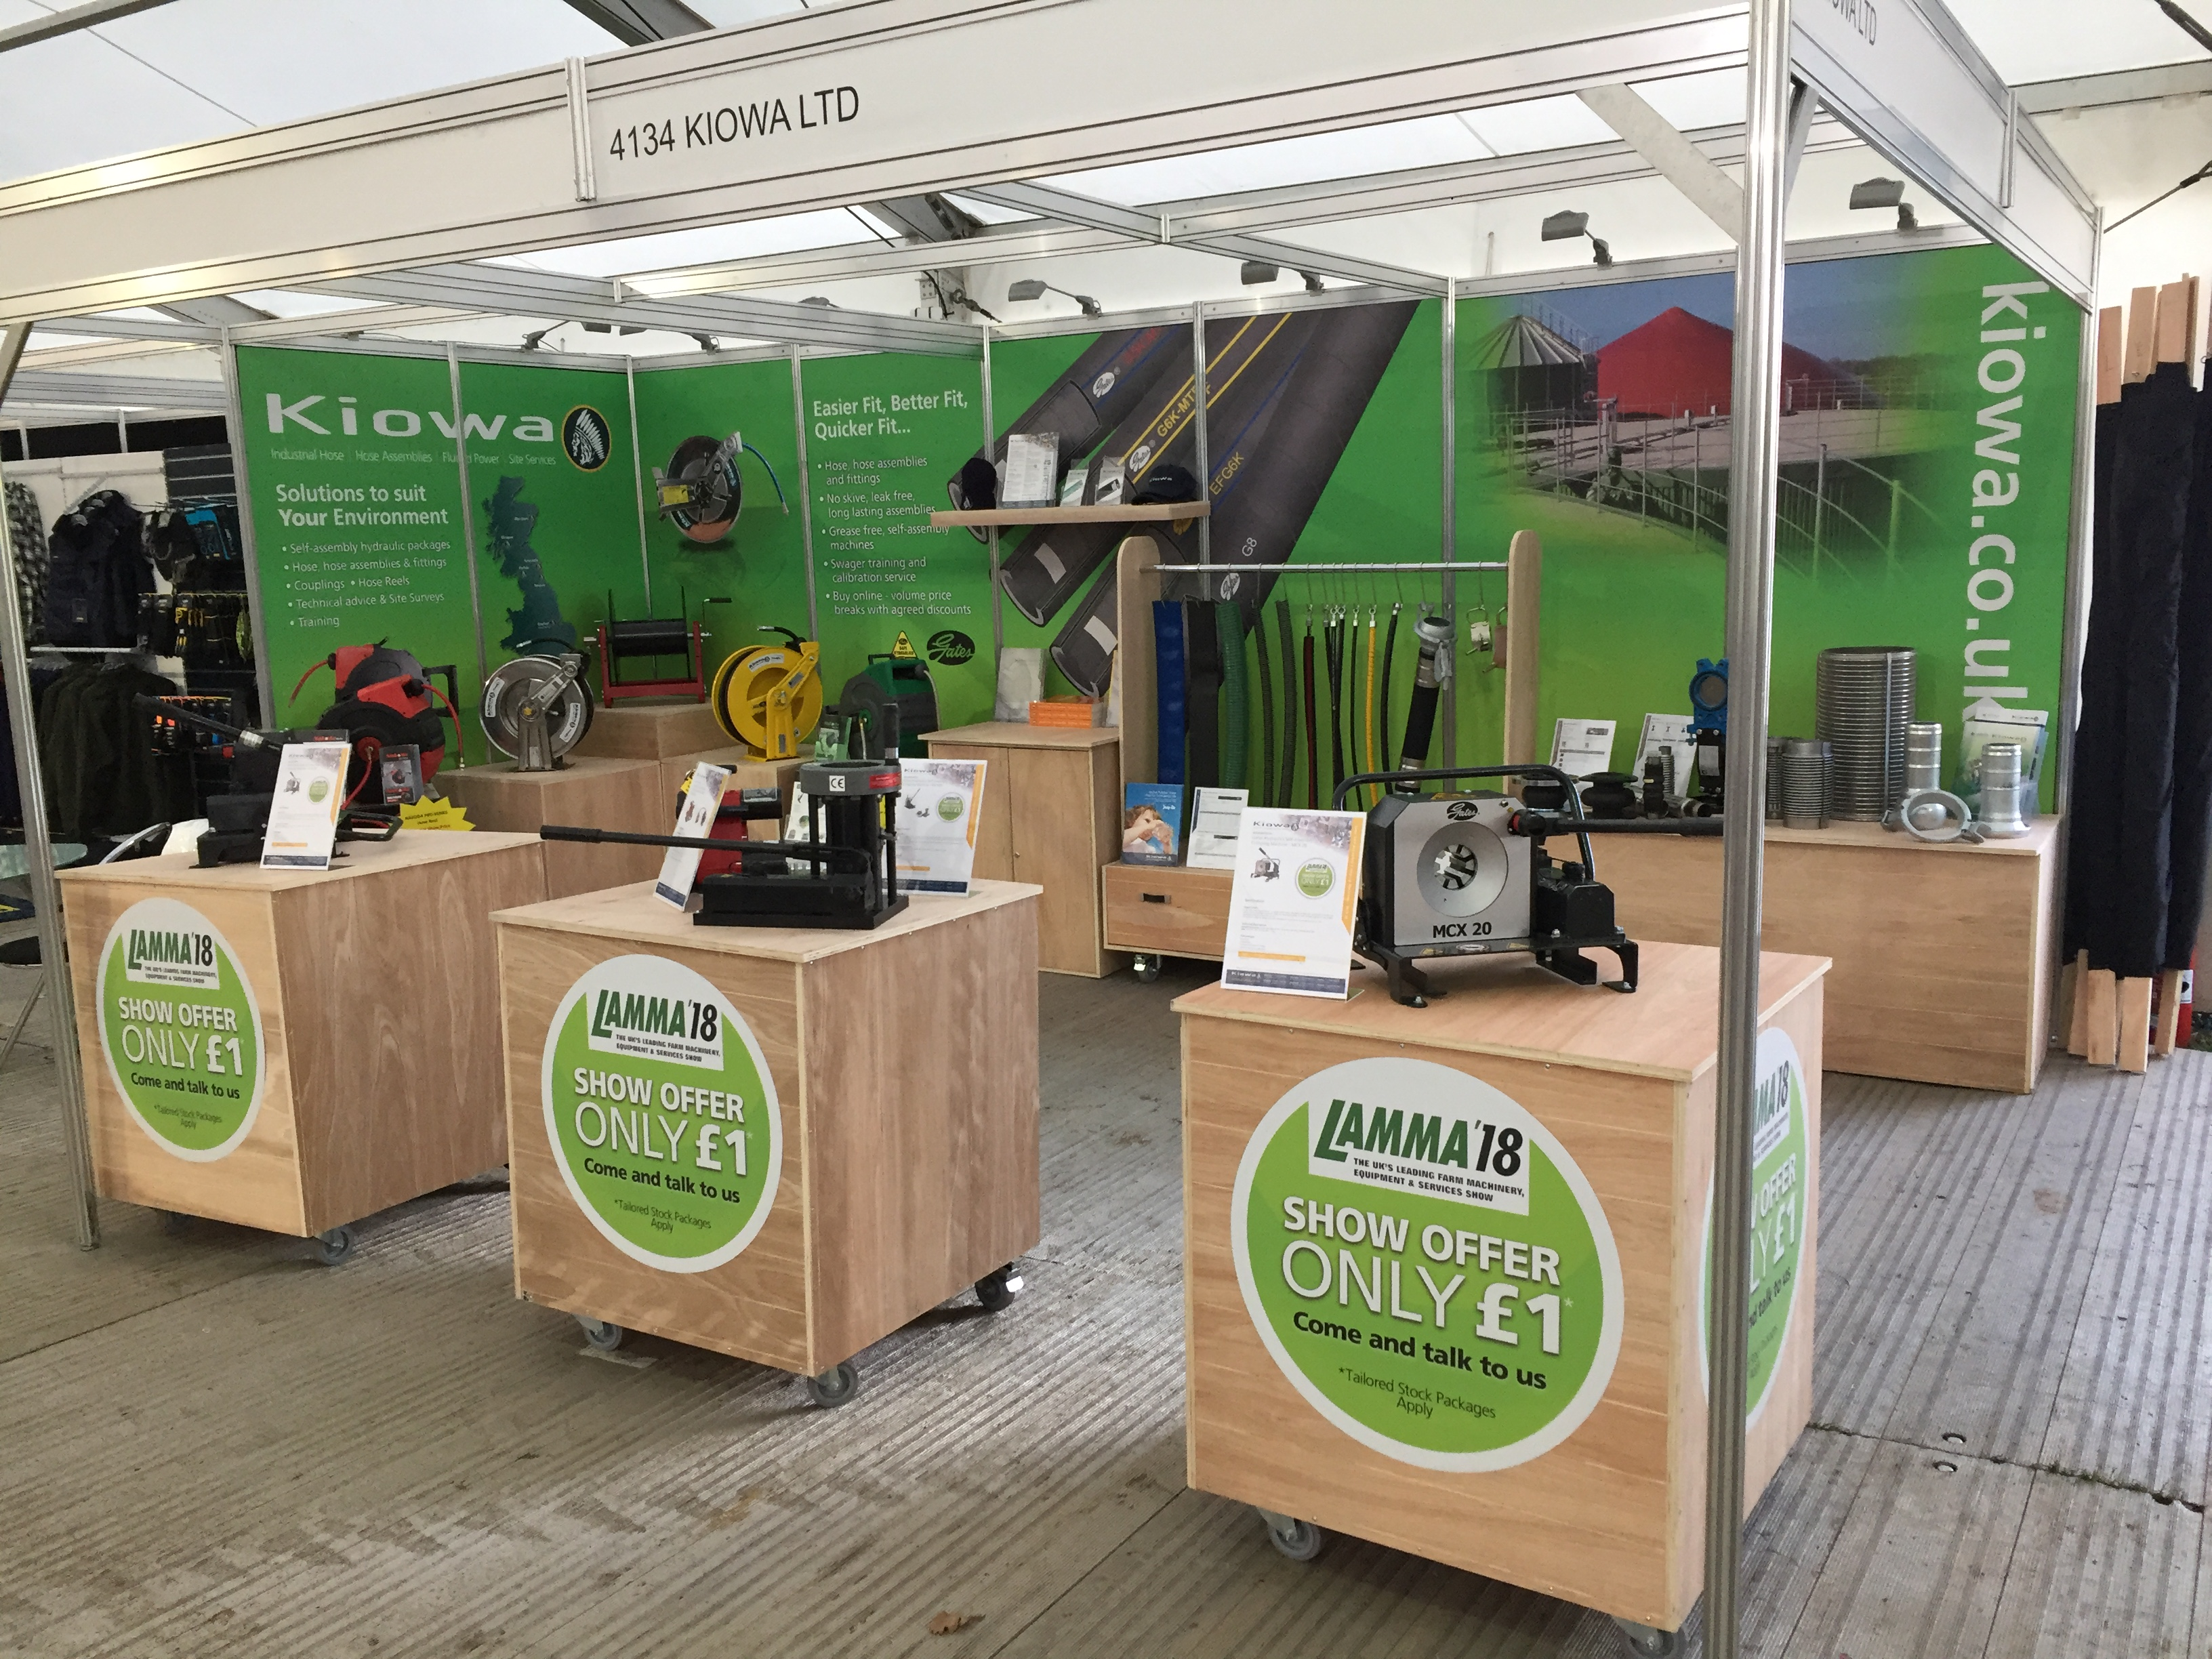 LAMMA'18 – 18th & 19th January